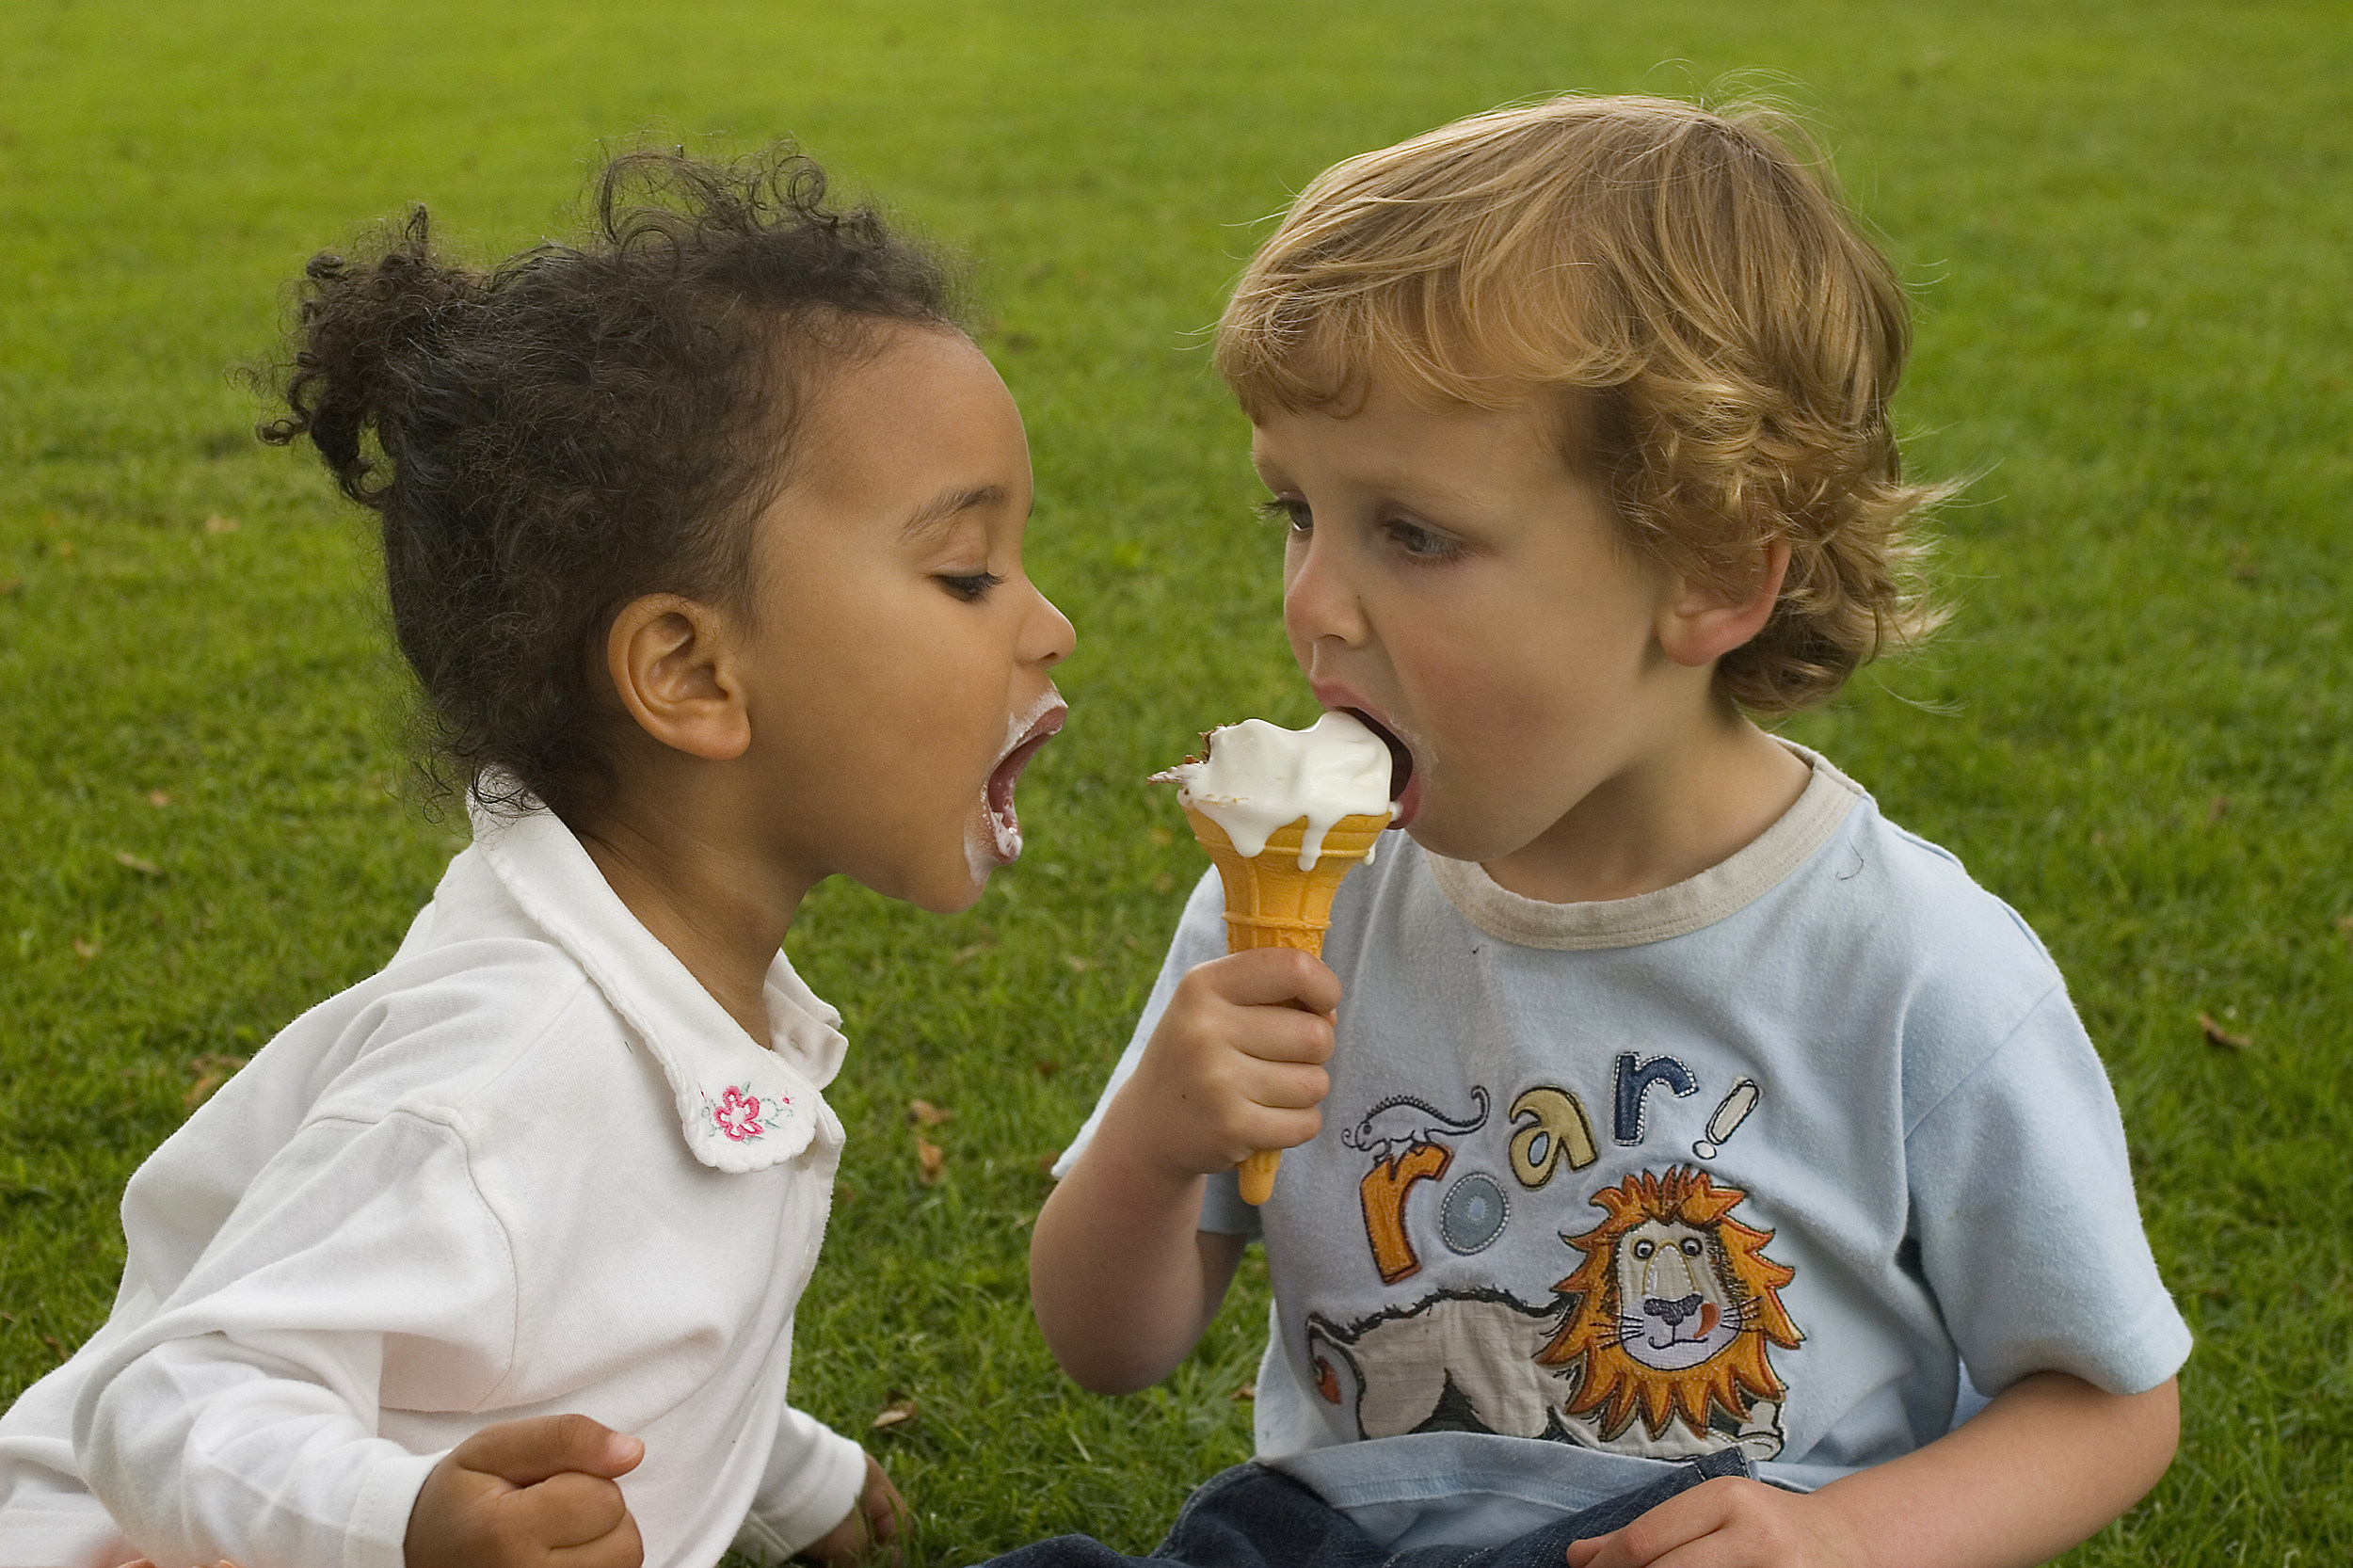 Two Young Children Sharing an Ice Cream